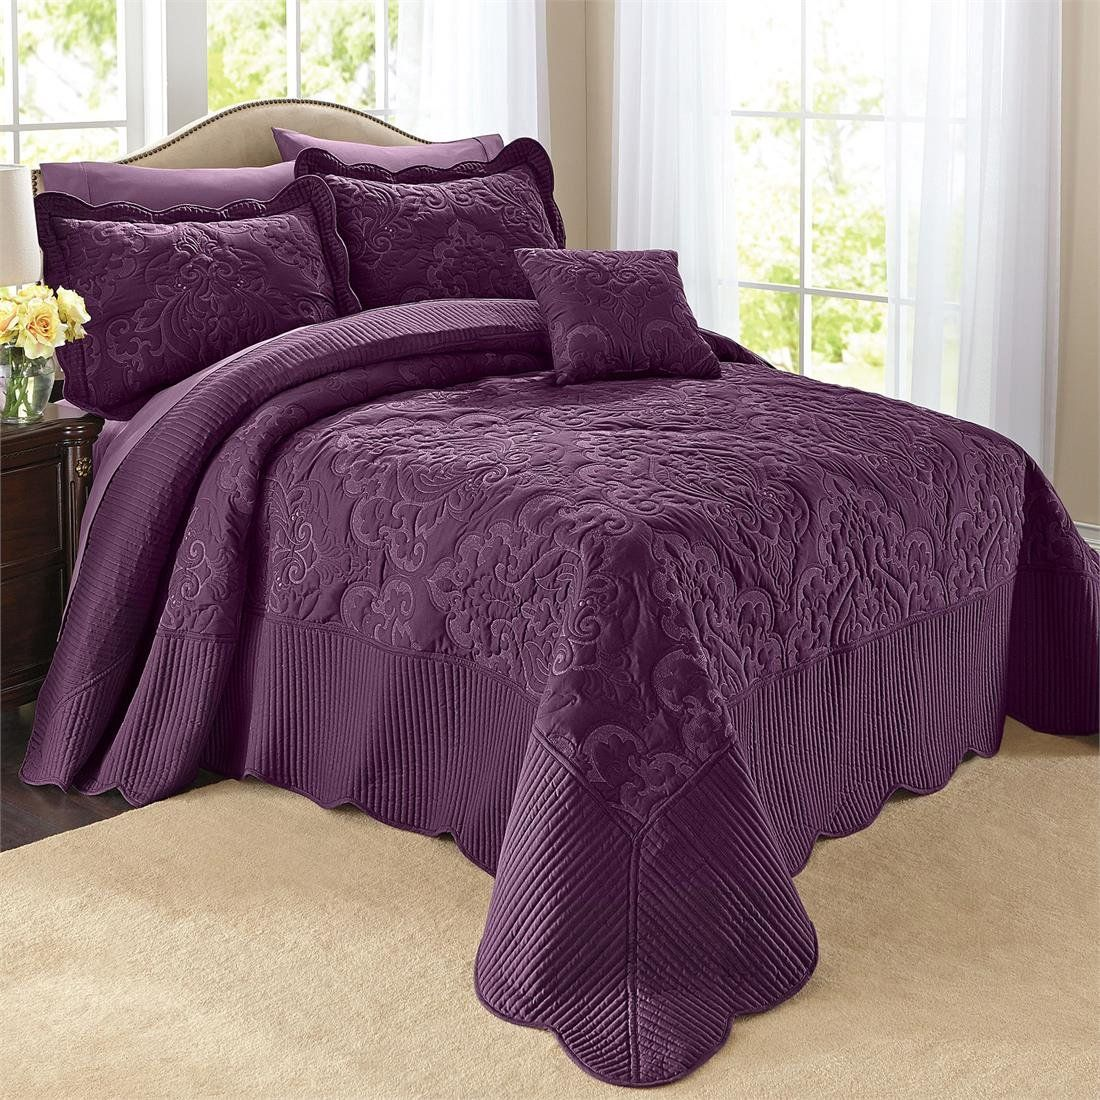 Amazoncom  Brylanehome Amelia Bedspread Taupe King   Home Plum etc  Bed spreads